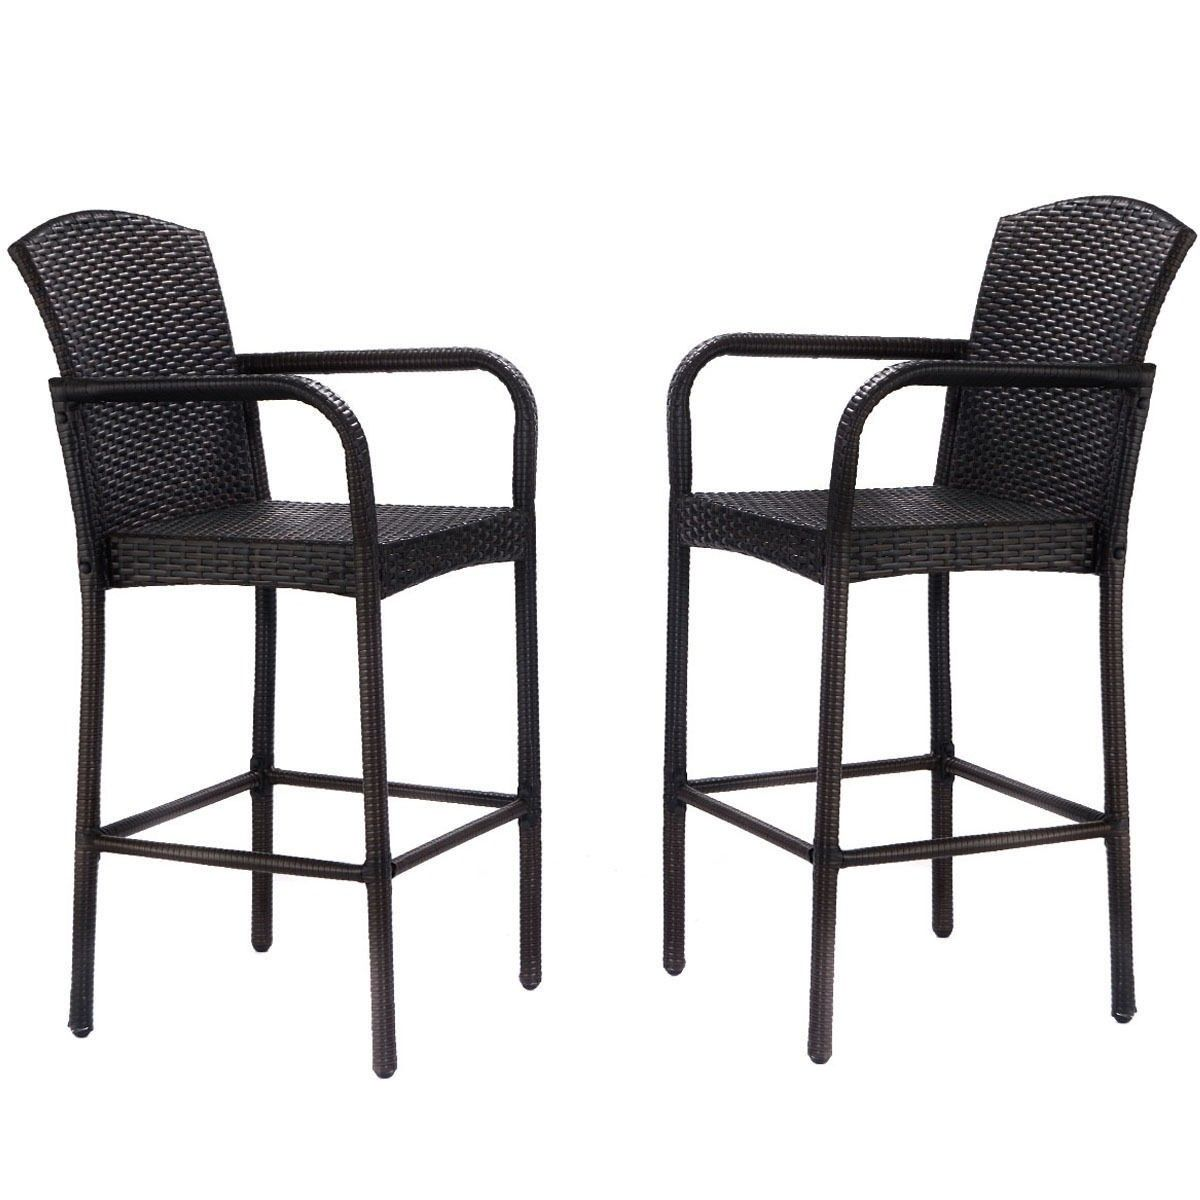 2 pcs Rattan Bar Stool Set High Chairs | Pinterest